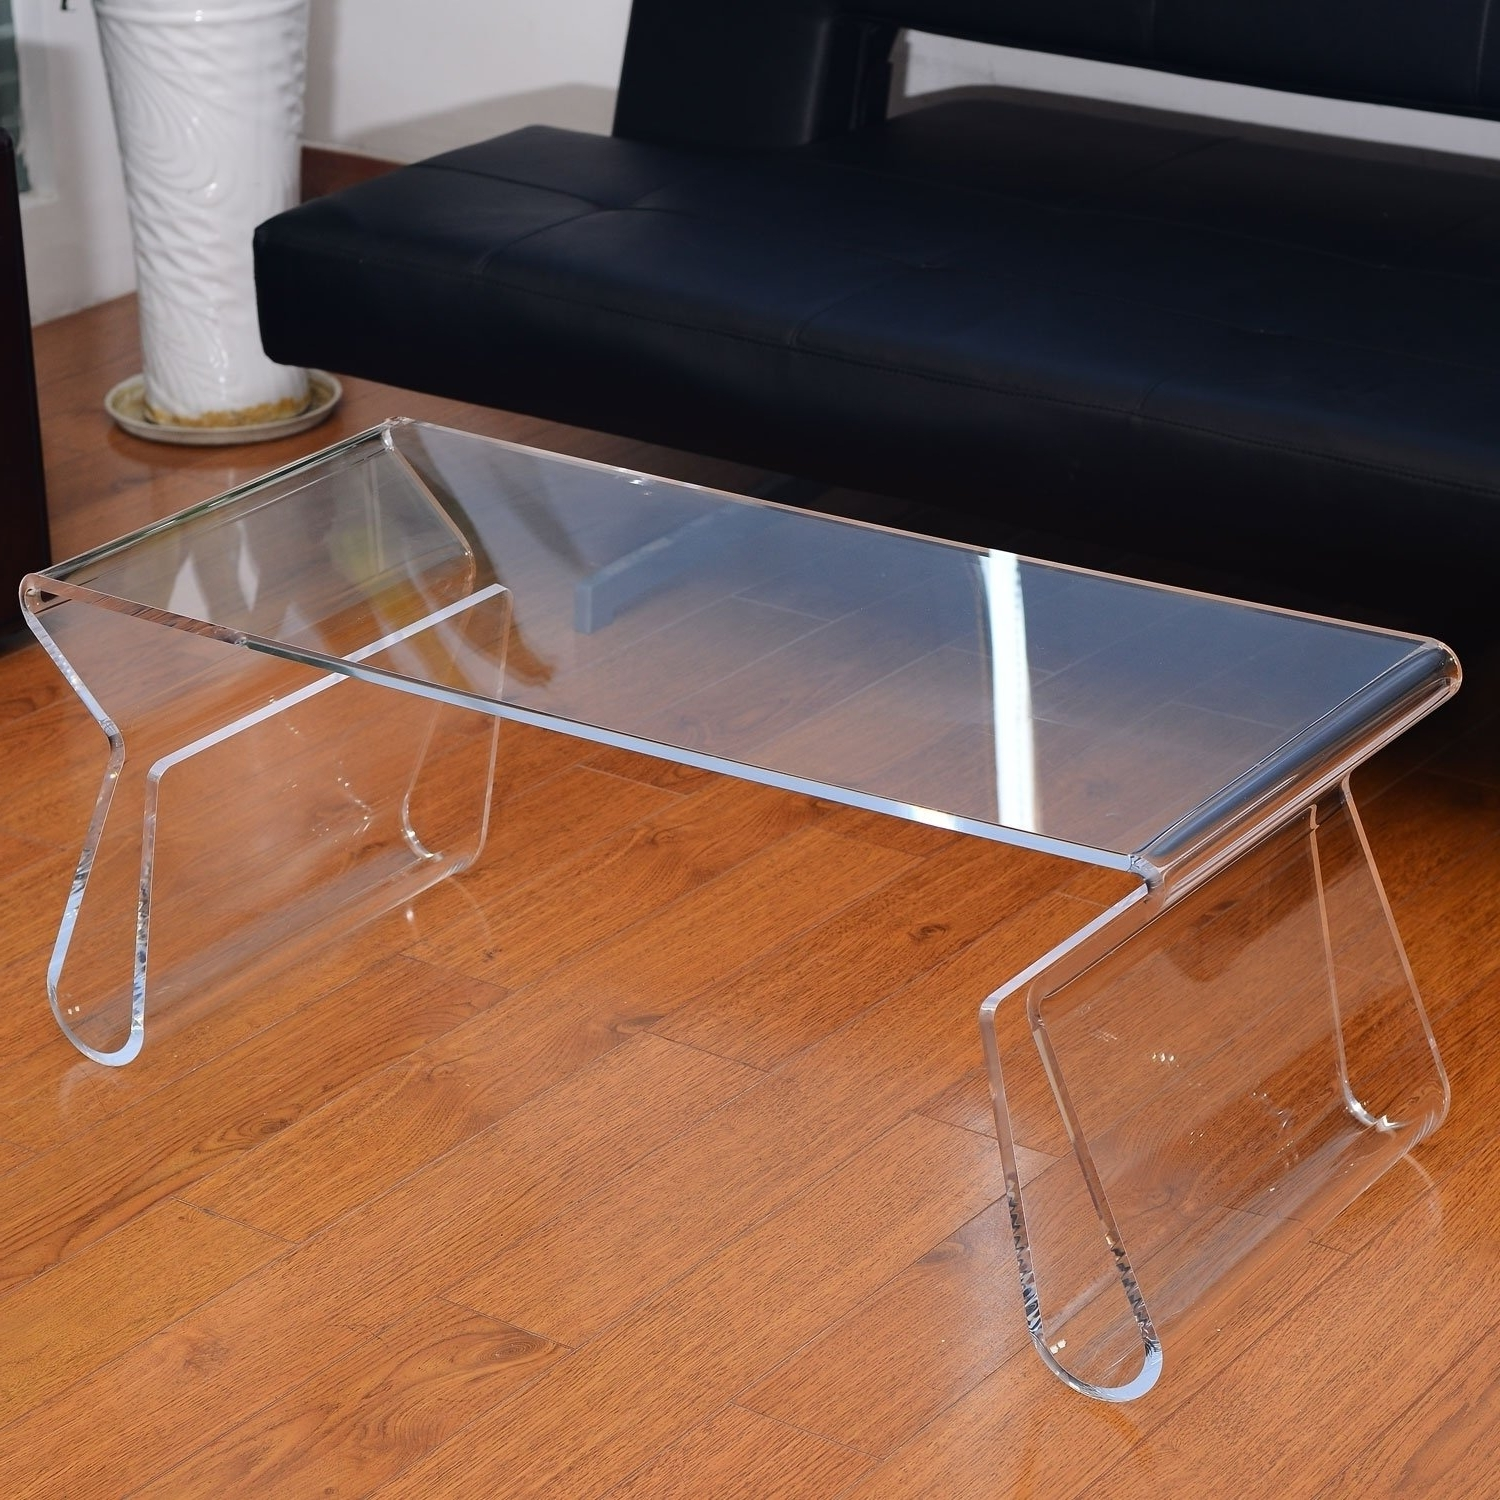 "2017 Modern Acrylic Coffee Tables Within Shop Homcom 38"" Modern Acrylic Coffee Table – Free Shipping Today (View 1 of 20)"